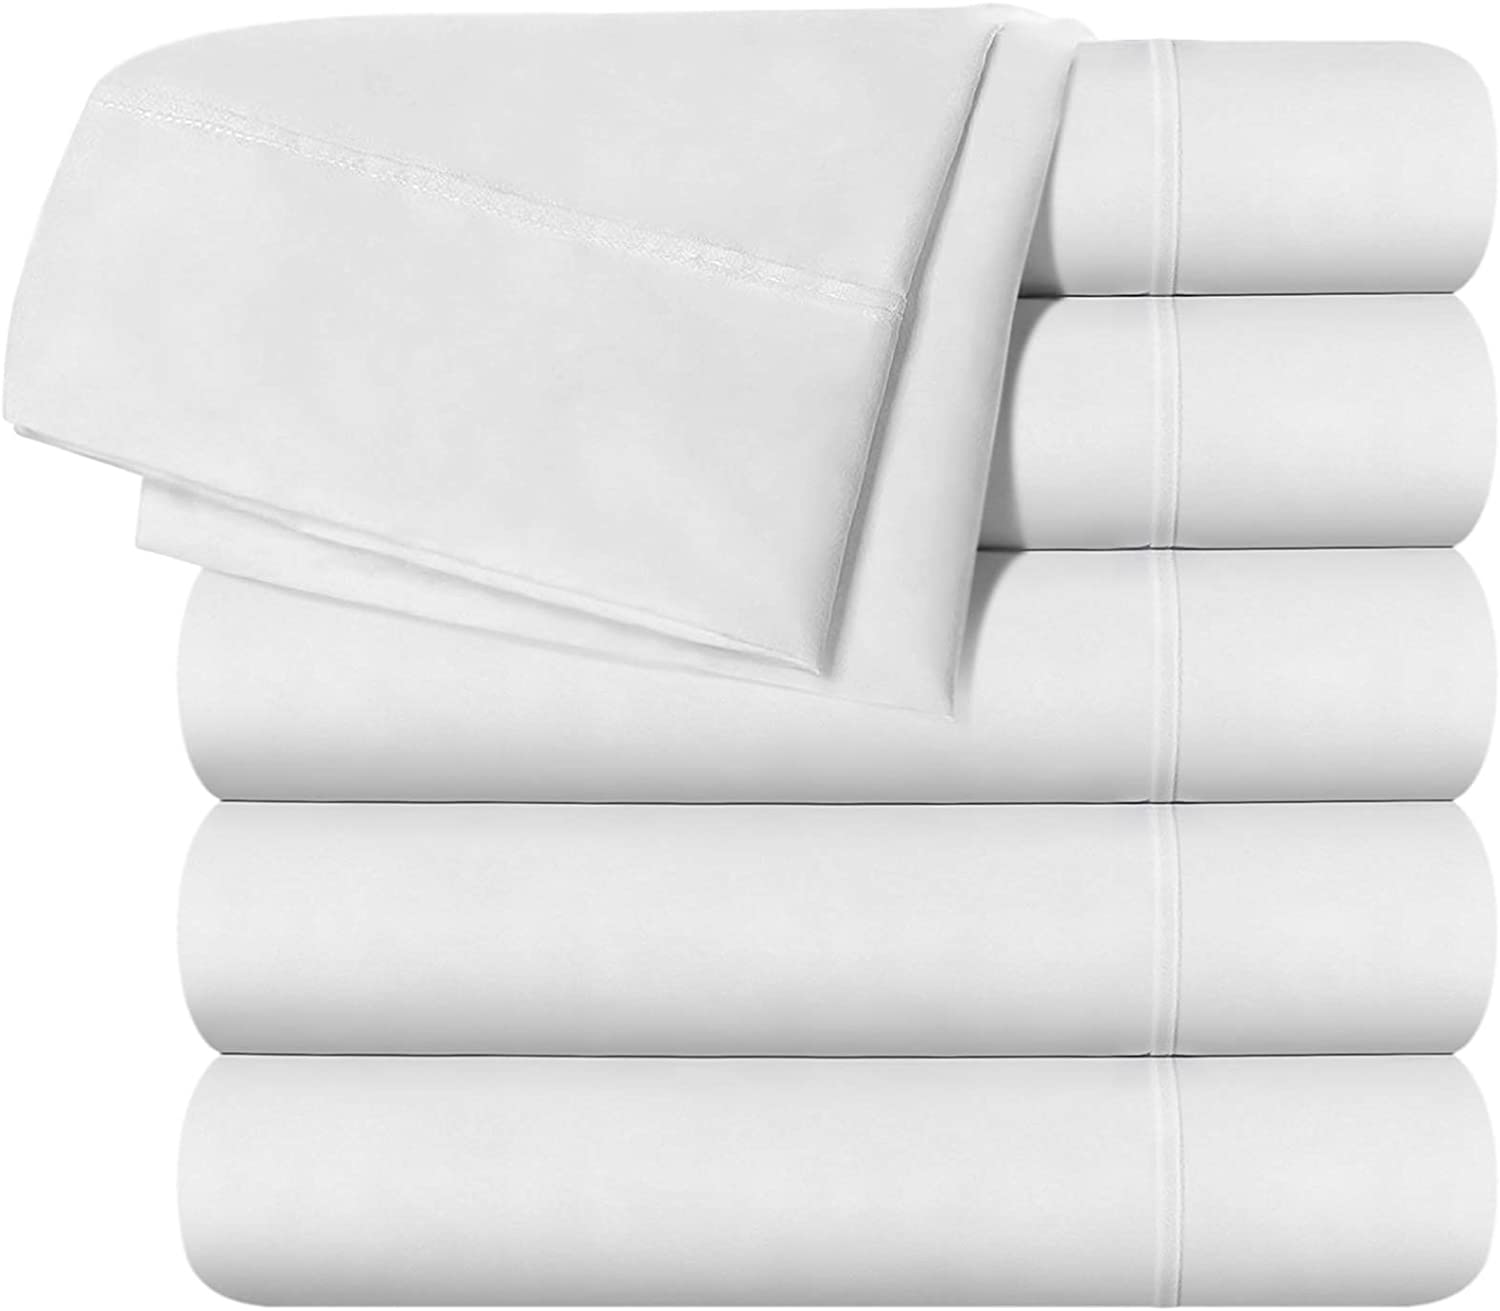 Utopia Bedding Full Flat Sheet - White (6 Pack)